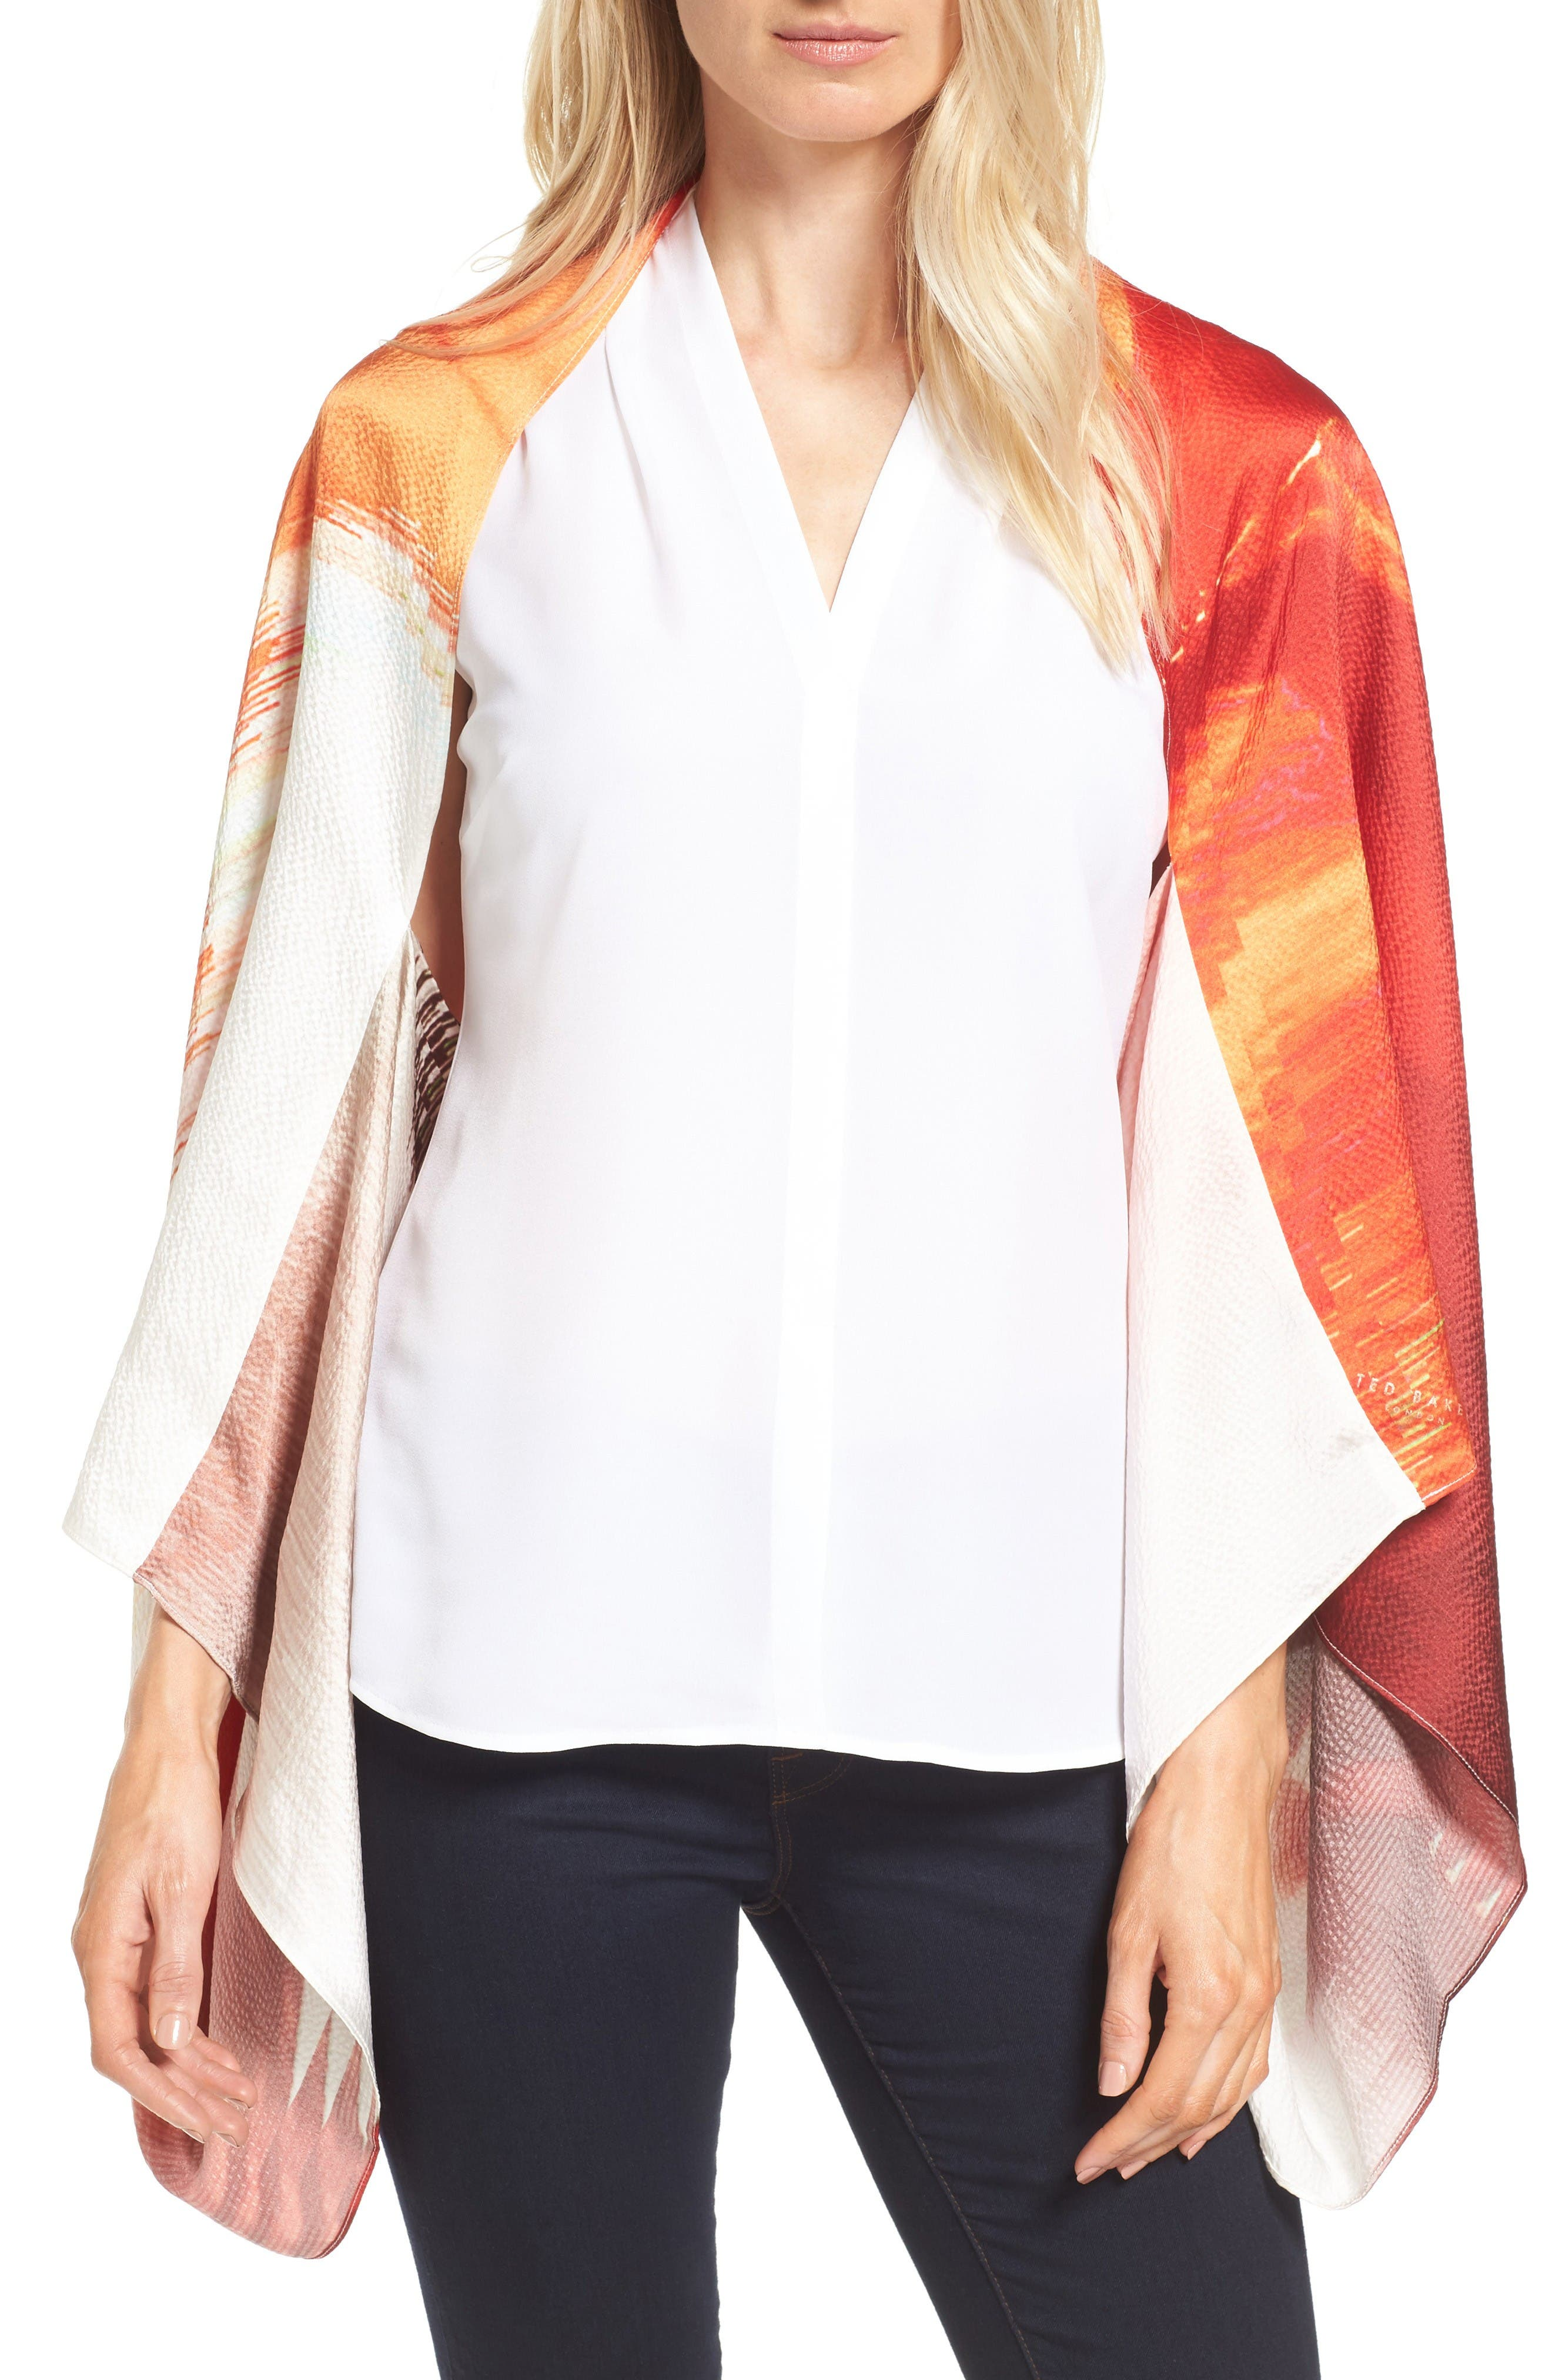 Pamm Playful Poppy Silk Cape Scarf,                         Main,                         color, Mid Red